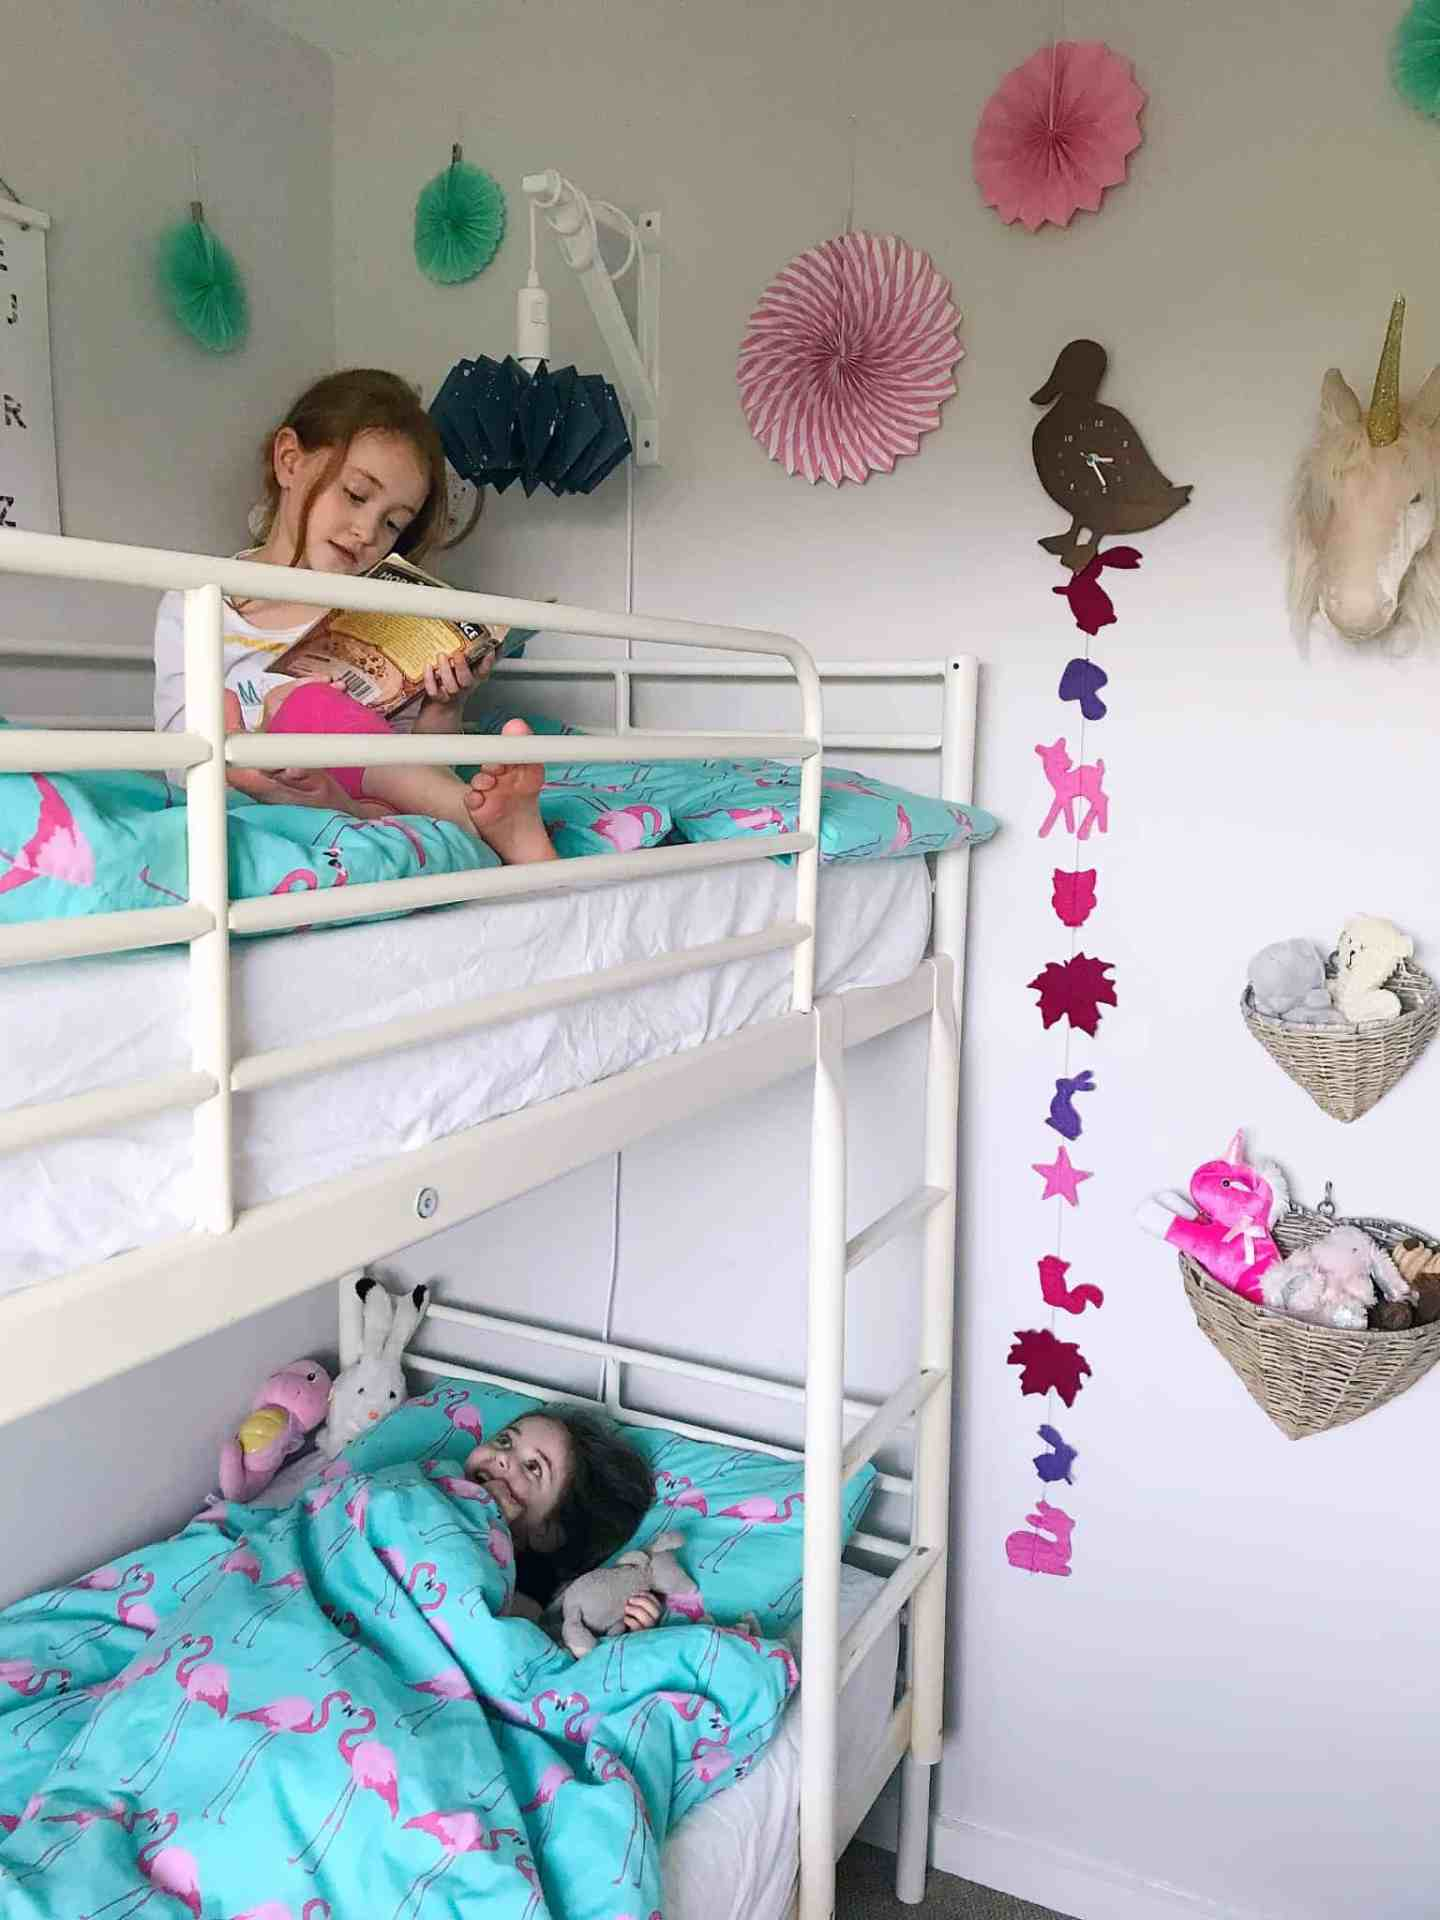 Sisters in their shared bedroom with bunk beds